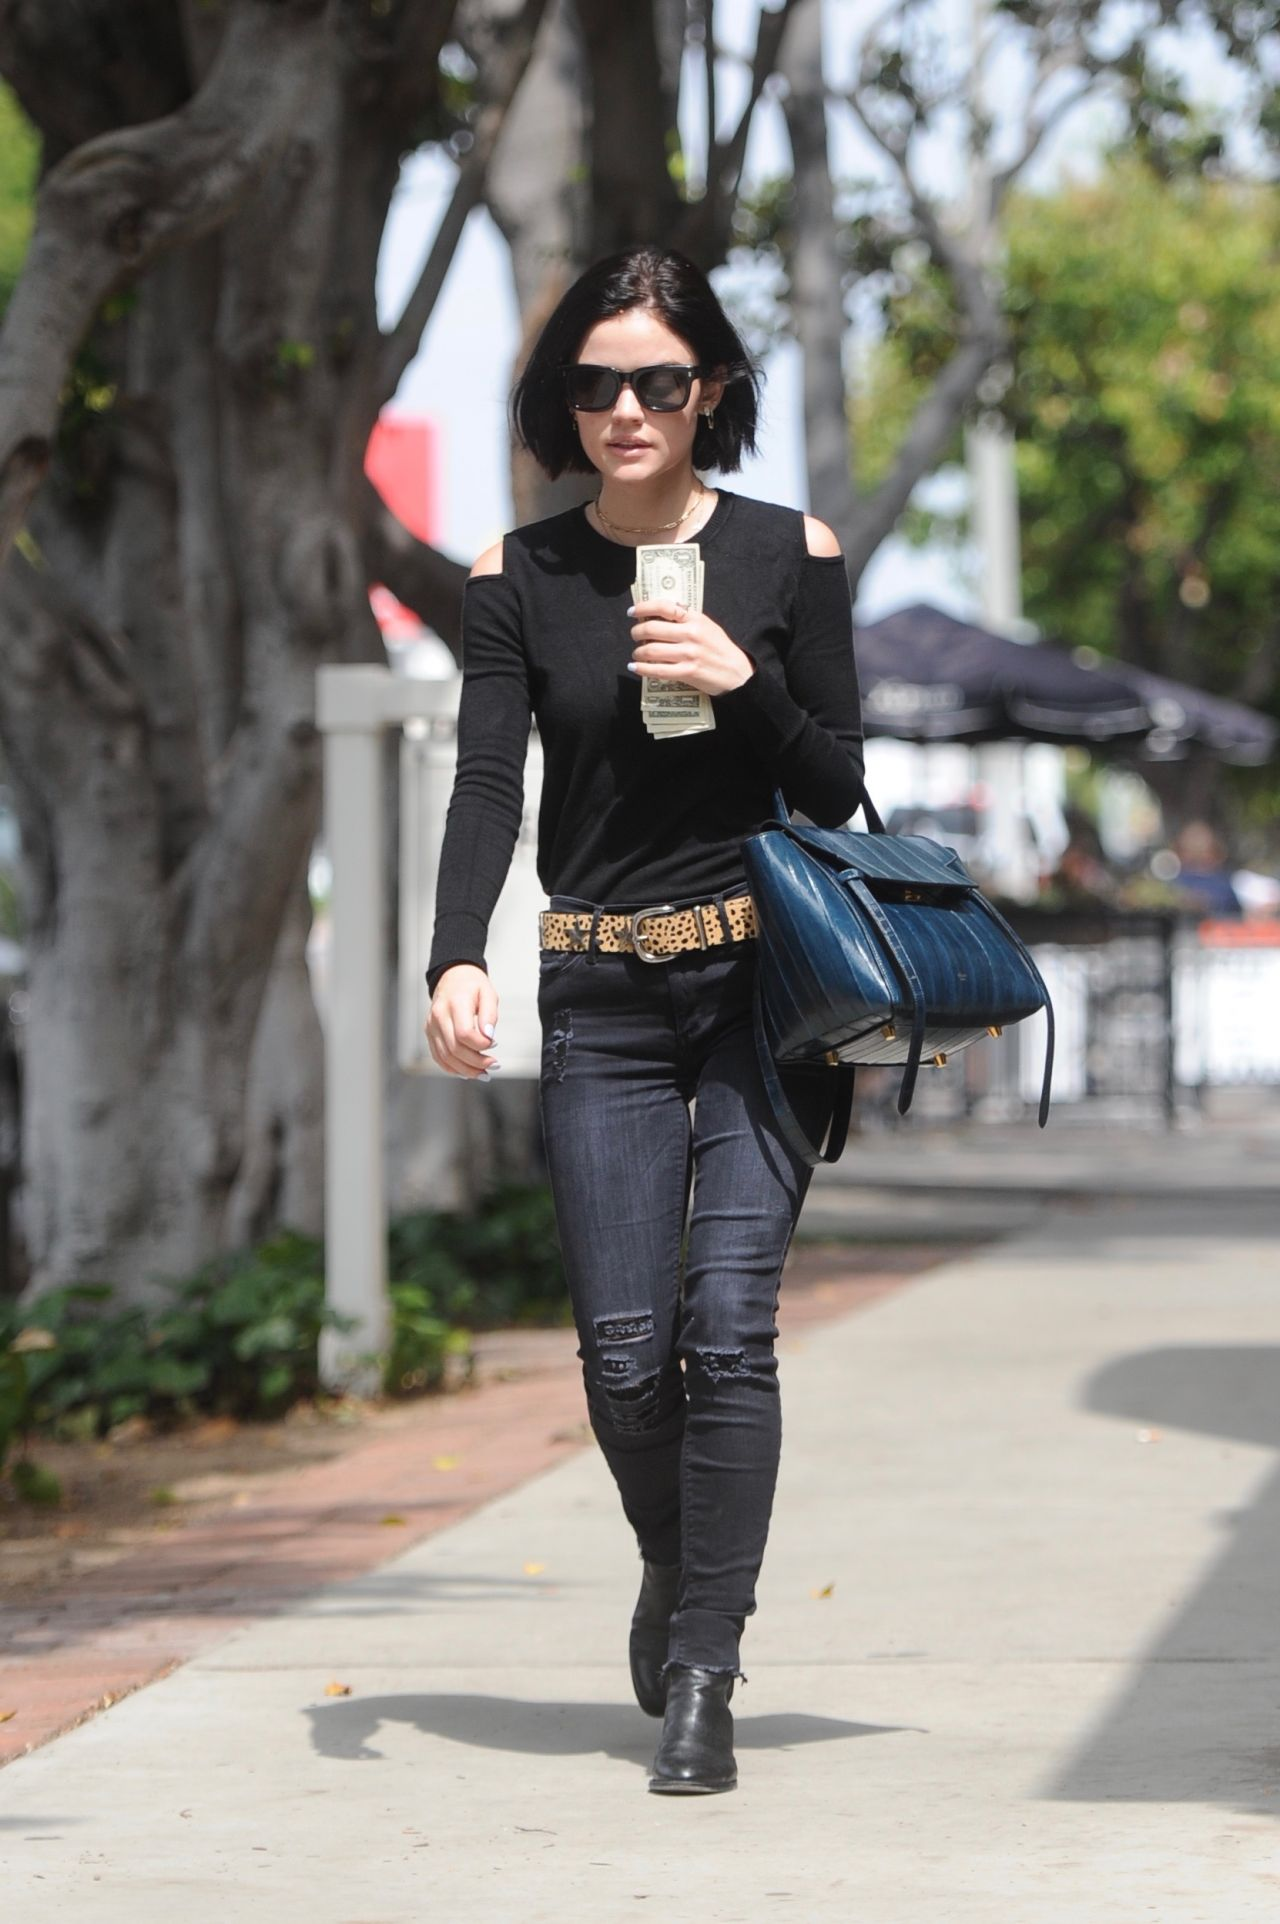 lucy hale outfit ideas shopping on melrose place ca 05 09 2017